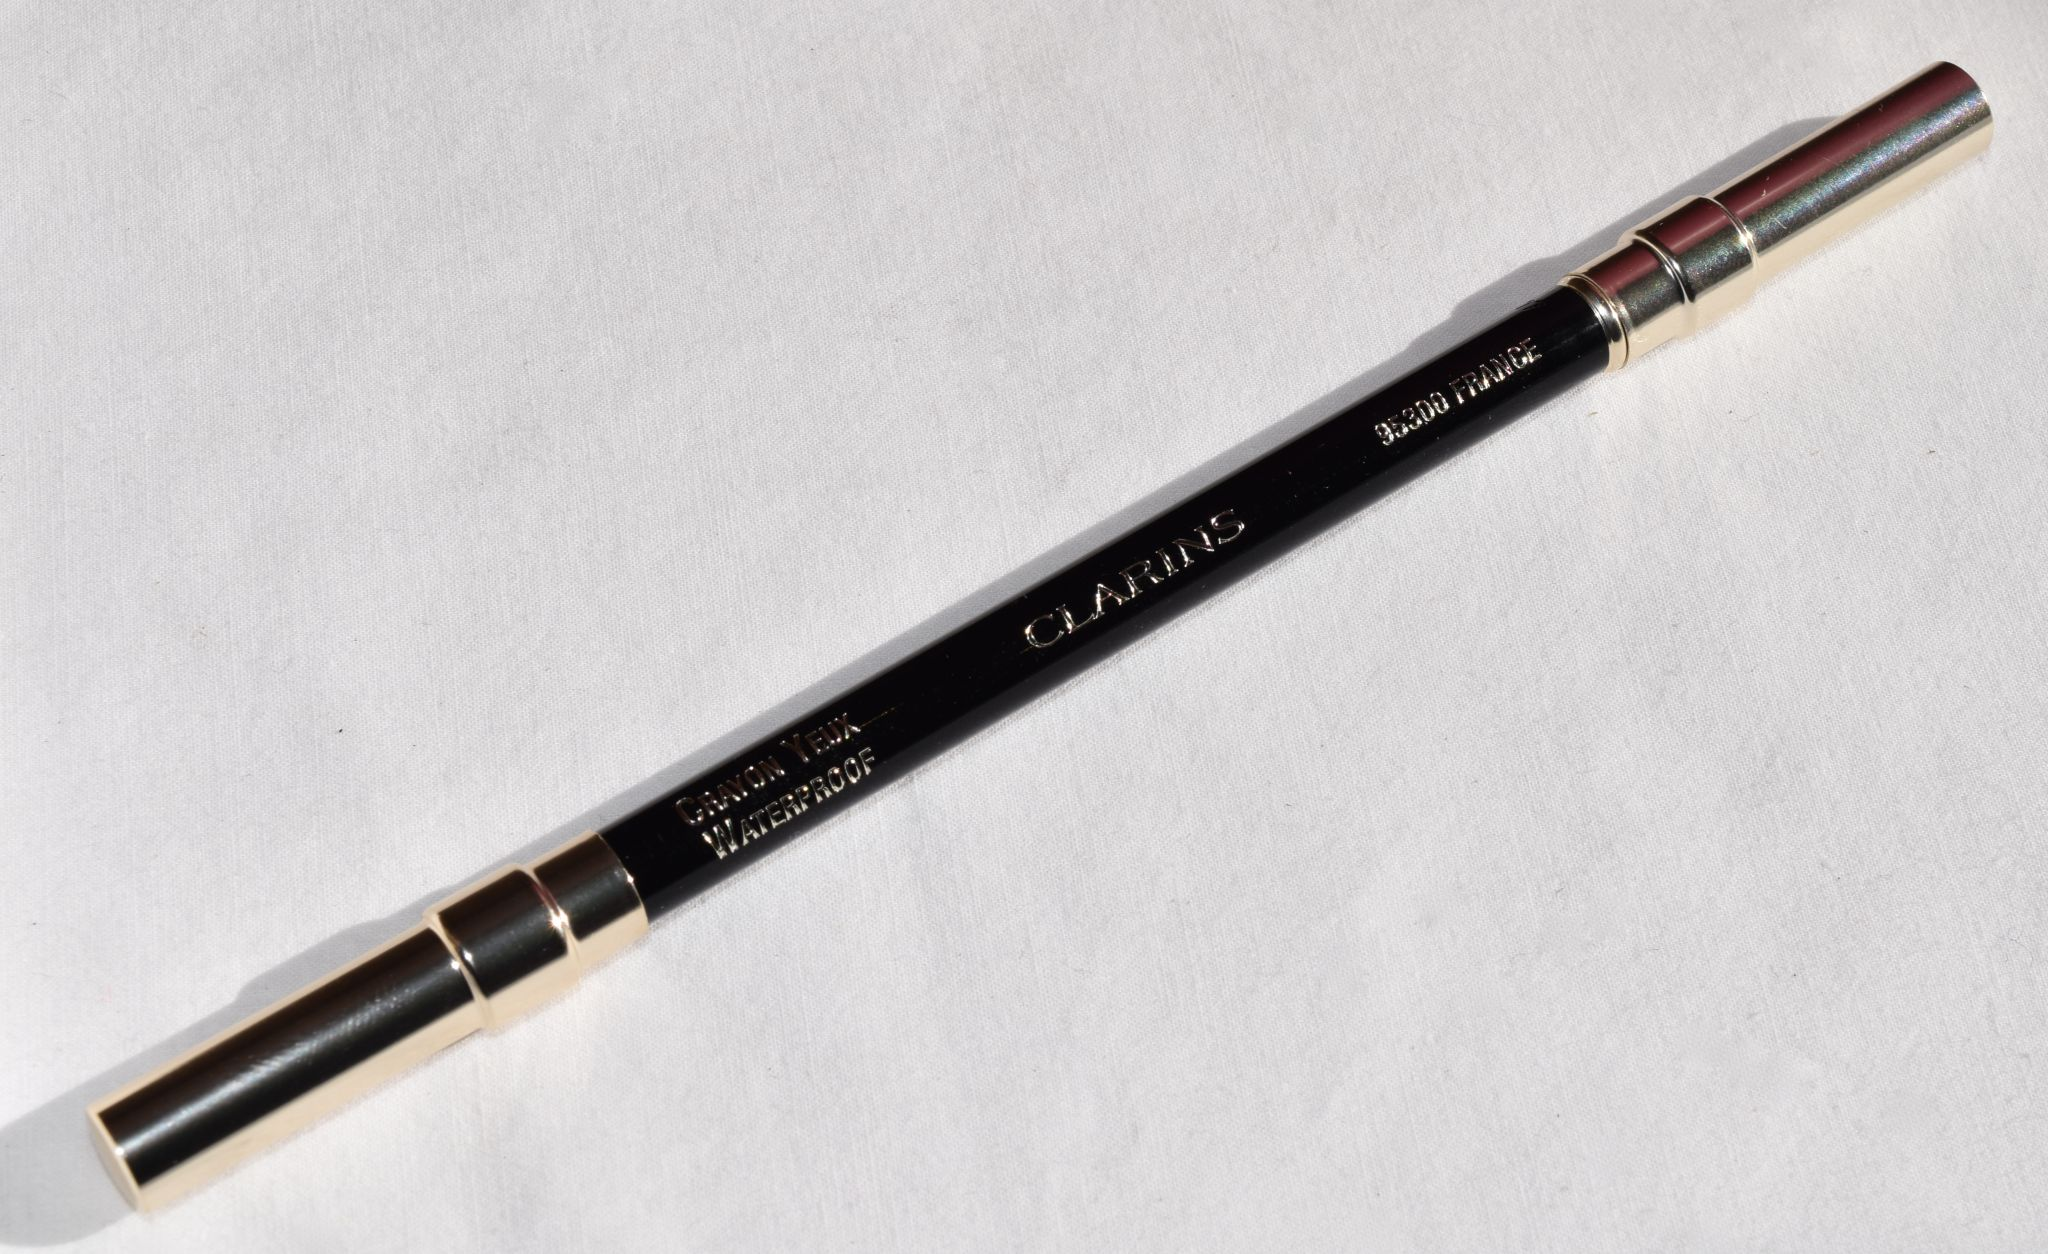 Clarins Black Waterproof Eyeliner